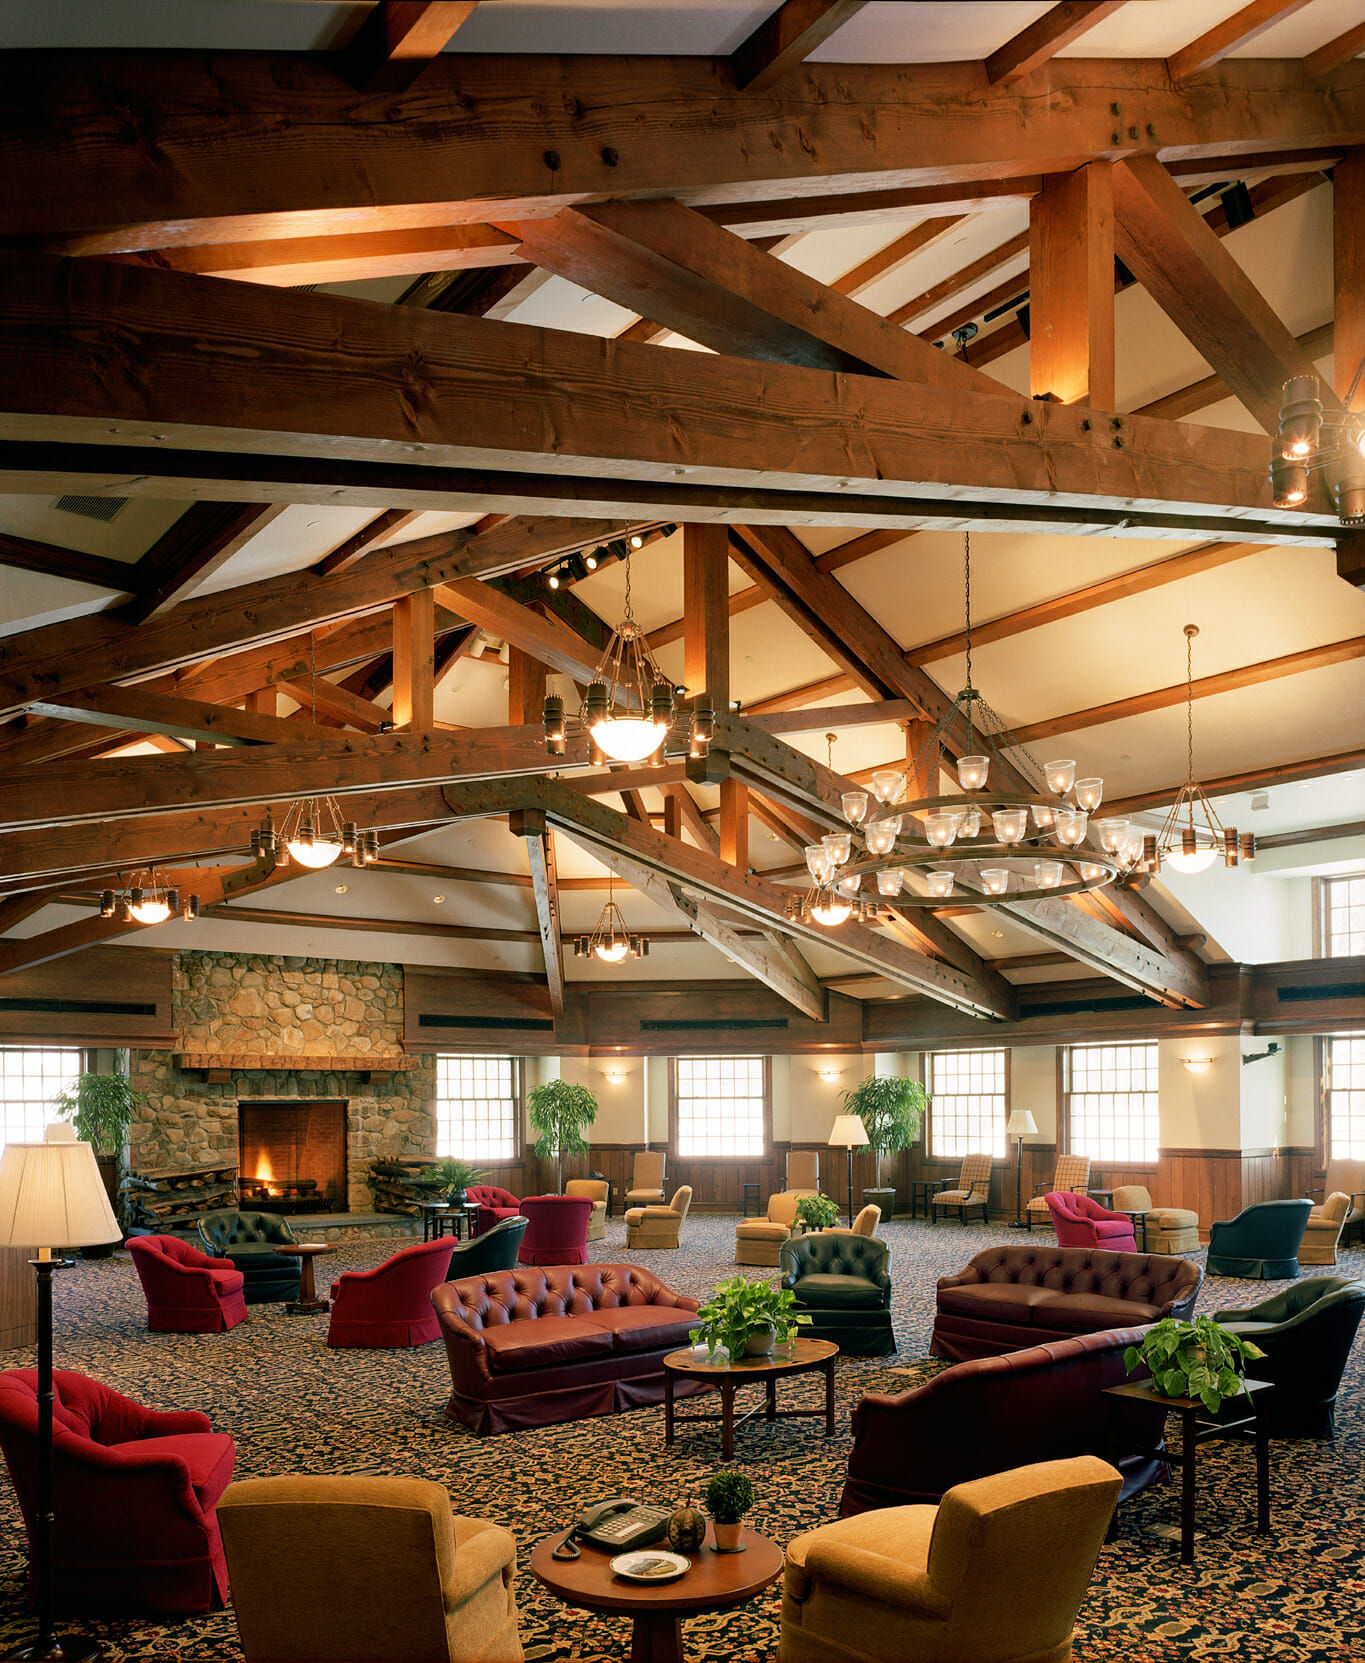 Ceiling Timber: Heavy Timber Ceiling Beams